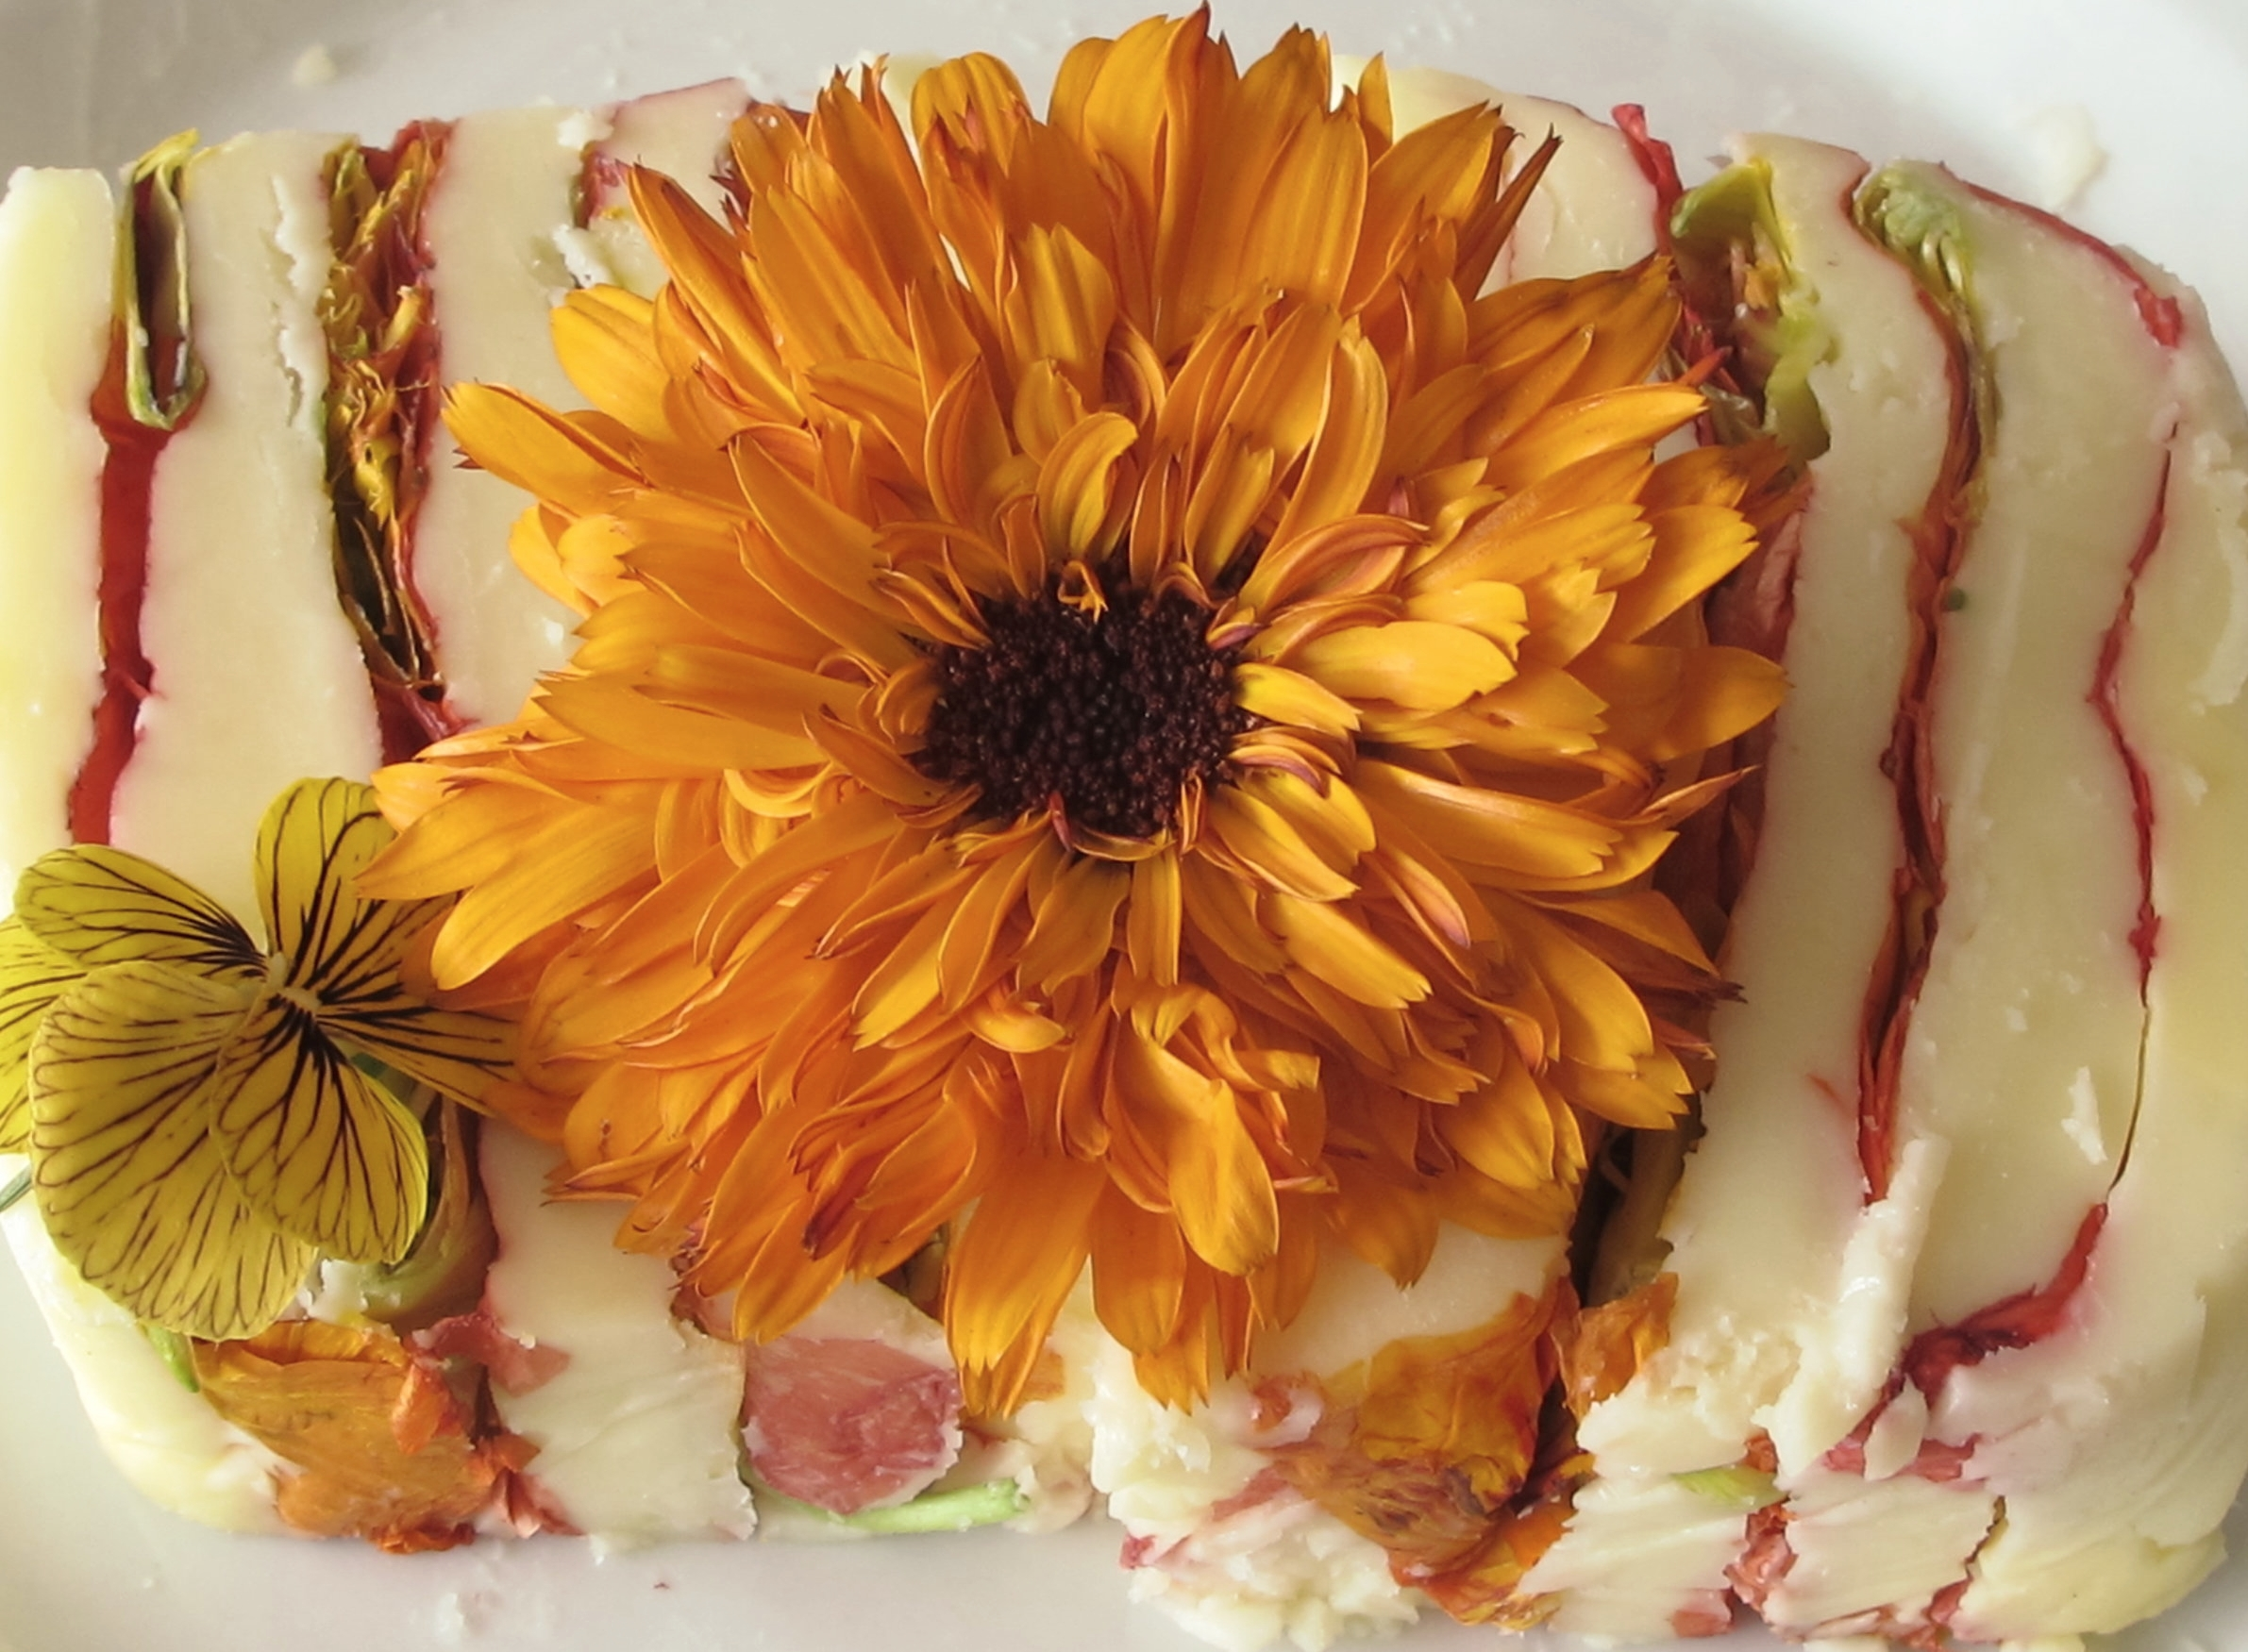 Edible Flowers - Our backyard flower guru, AKA Mama botanica, AKA Joan Stevens, is back again to teach you about the various uses and benefits of edible flowers. Learn how to grow, cultivate, cook, and design with these gems of the garden.